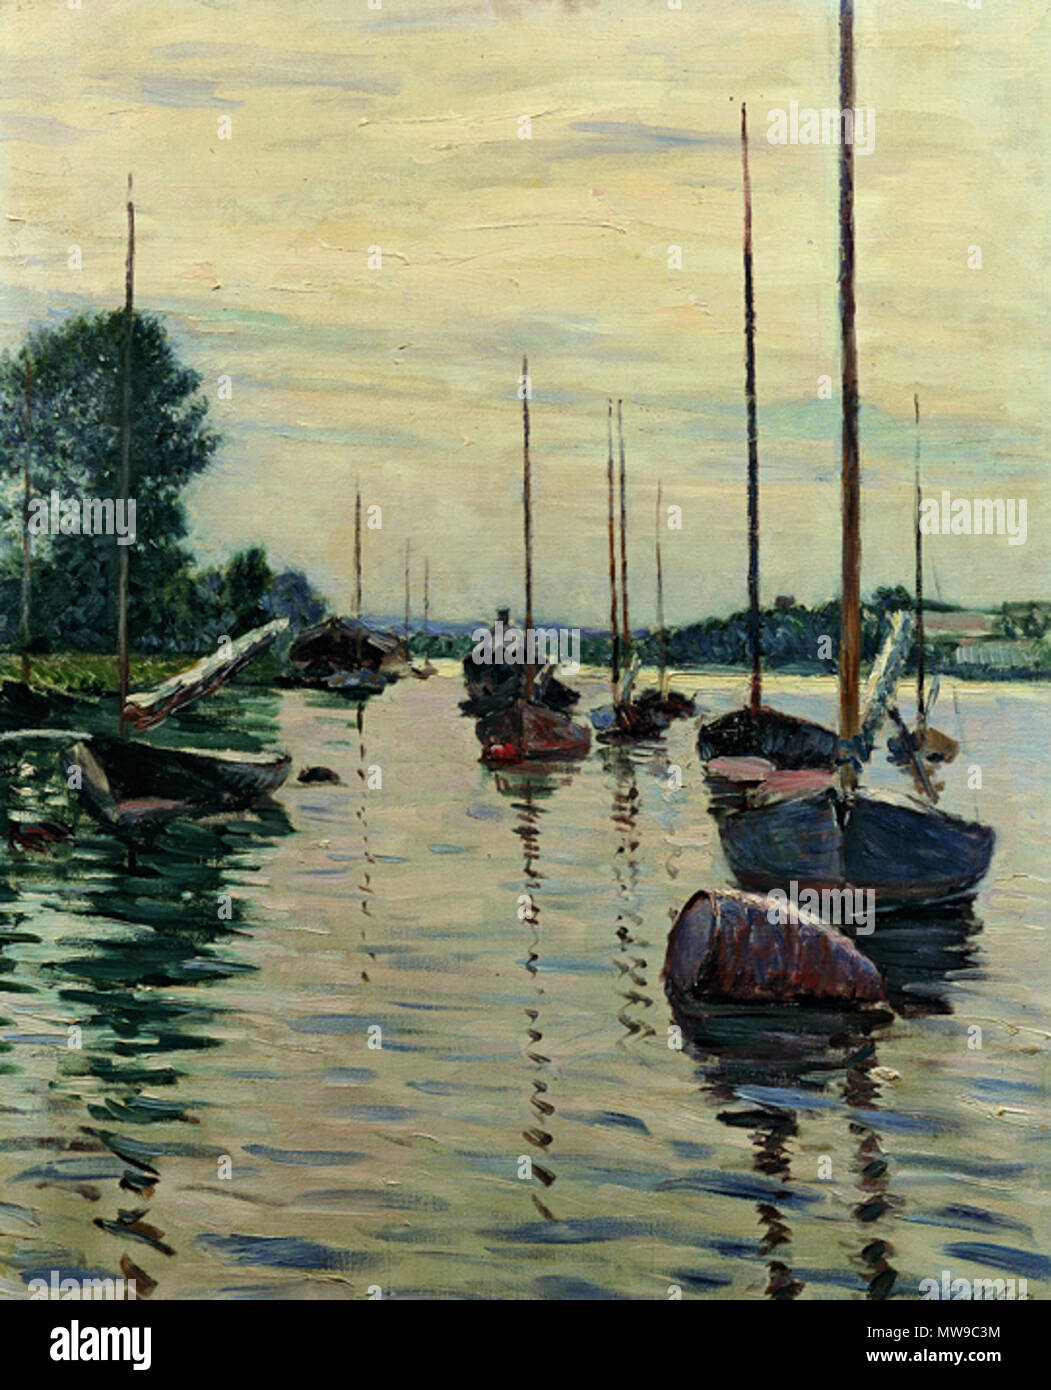 . Boats Moored on the Seine . 1892.    Gustave Caillebotte (1848–1894)   Alternative names Gustav Caillebotte; Caillebotte  Description French painter, art collector, patron, philatelist, marine architect and sailor  Date of birth/death 19 August 1848 21 February 1894  Location of birth/death Paris Gennevilliers  Work period between 1863 and 1893  Work location Paris, Petit-Gennevilliers, Yerres, Honfleur (1880–1889), Trouville-sur-Mer (1880–1893)  Authority control  : Q295144 VIAF:71399604 ISNI:0000 0001 2102 2151 ULAN:500011706 LCCN:n81047695 NLA:36549705 WorldCat 99 Brooklyn Cailleb - Stock Image